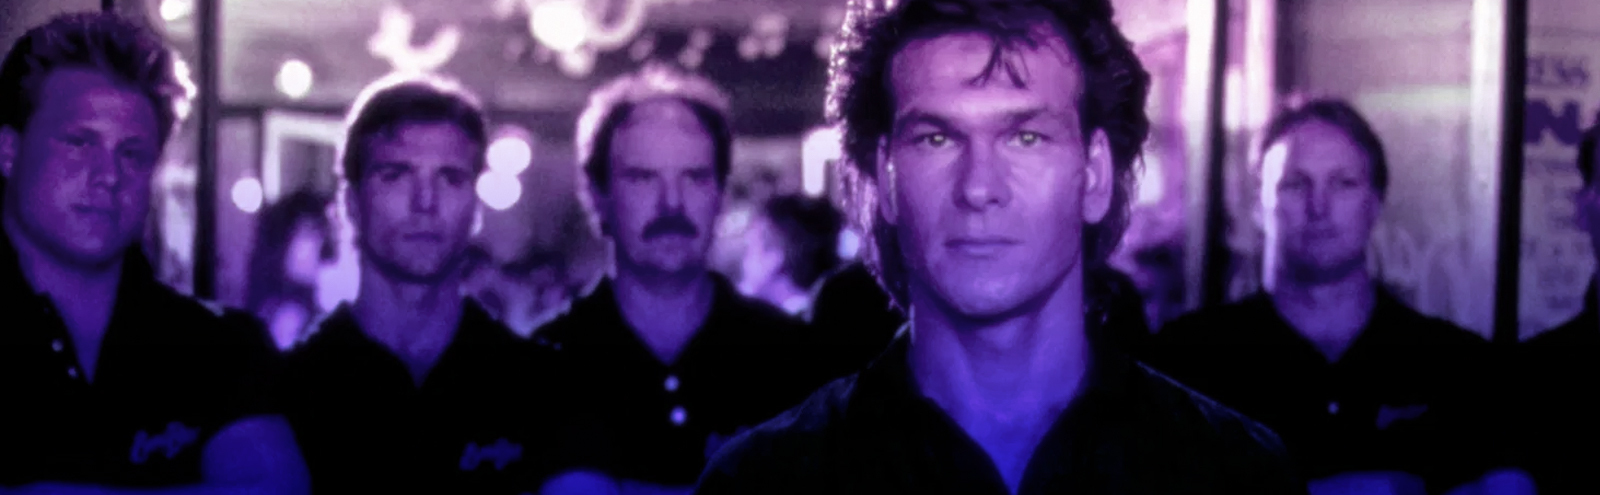 Road House Director Rowdy Herrington Reflects On His Cult Classic